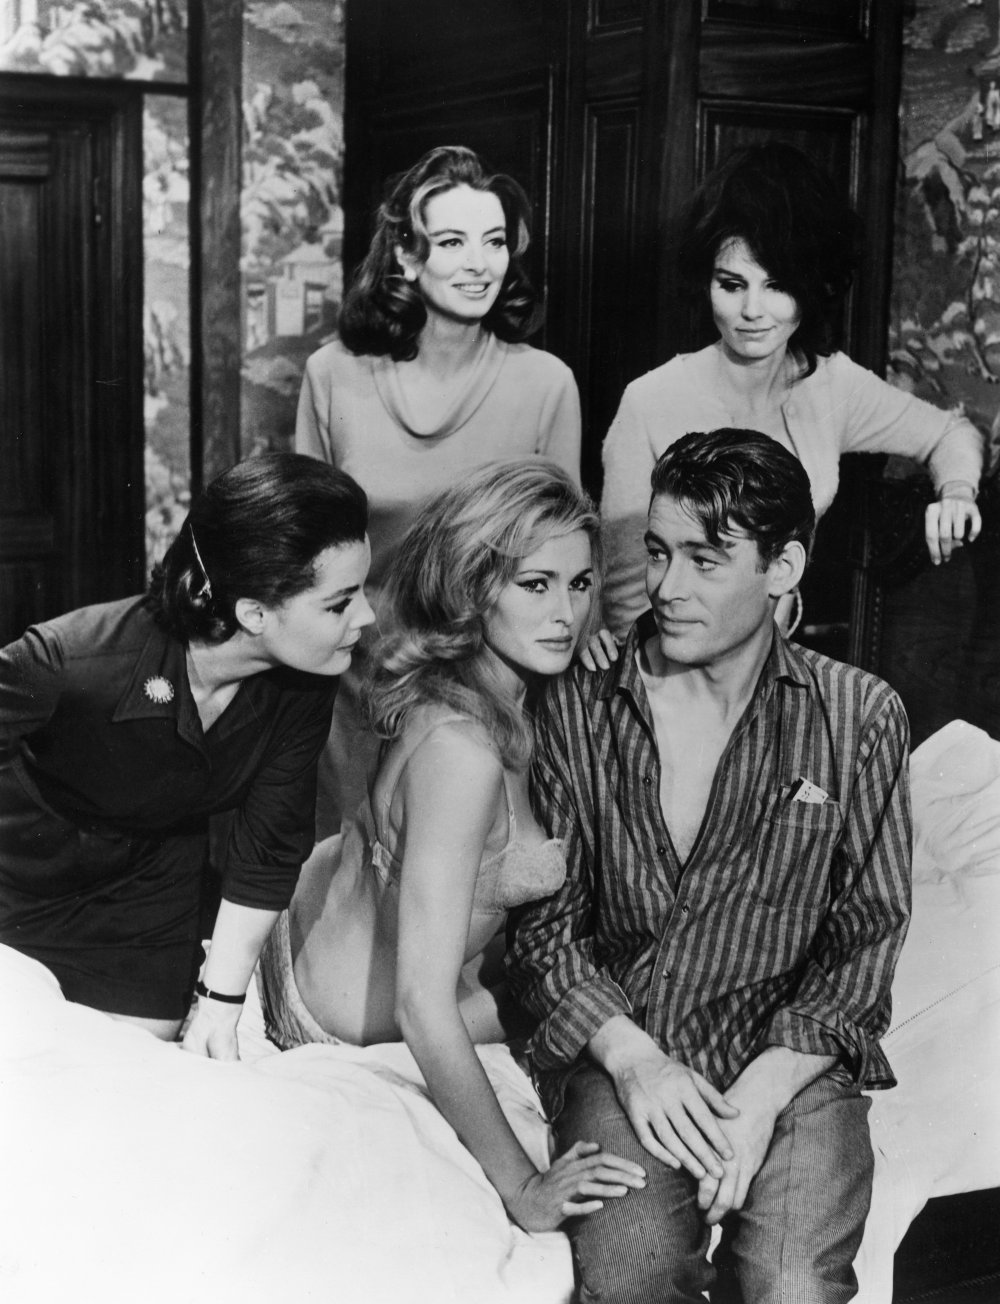 Playing an arch womaniser in the company of Romy Schneider, Paula Prentiss, Capucine and Ursula Andress in the 1965 sex comedy What's New Pussycat?, written by Woody Allen